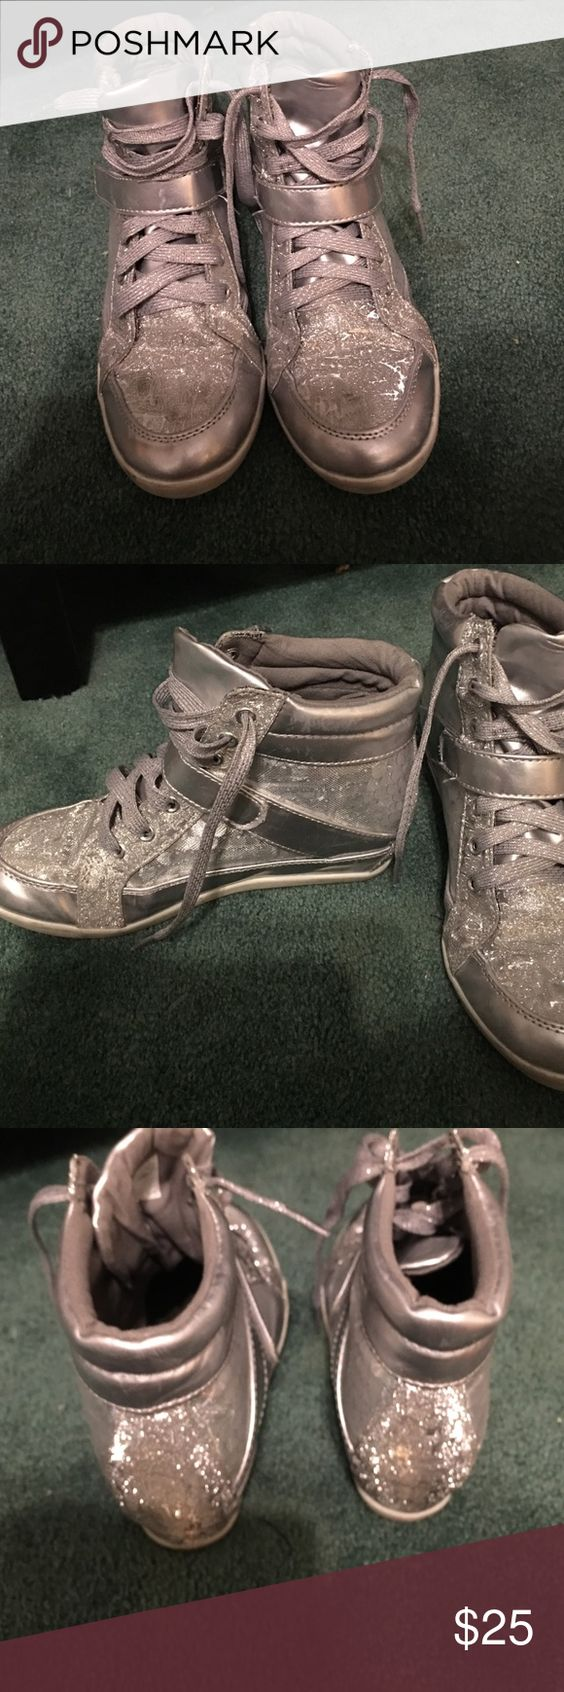 Silver mesh bling high top sneakers Size 7 .... Add a little style to your jeans. Sweet silver hi top sneakers. For you or a young girl. All the outside is in very good condition. No tears or worn areas Justice Shoes Sneakers